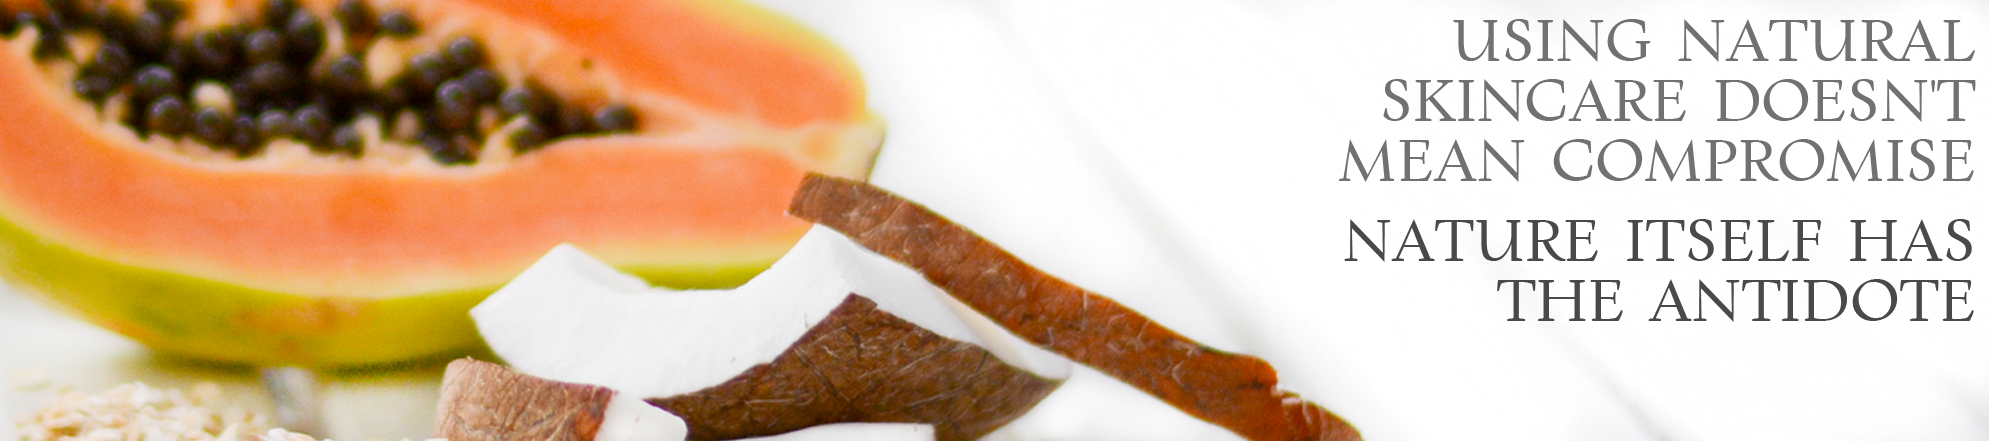 papaya-coconut-oats-dsc-2310-crop-bright.png